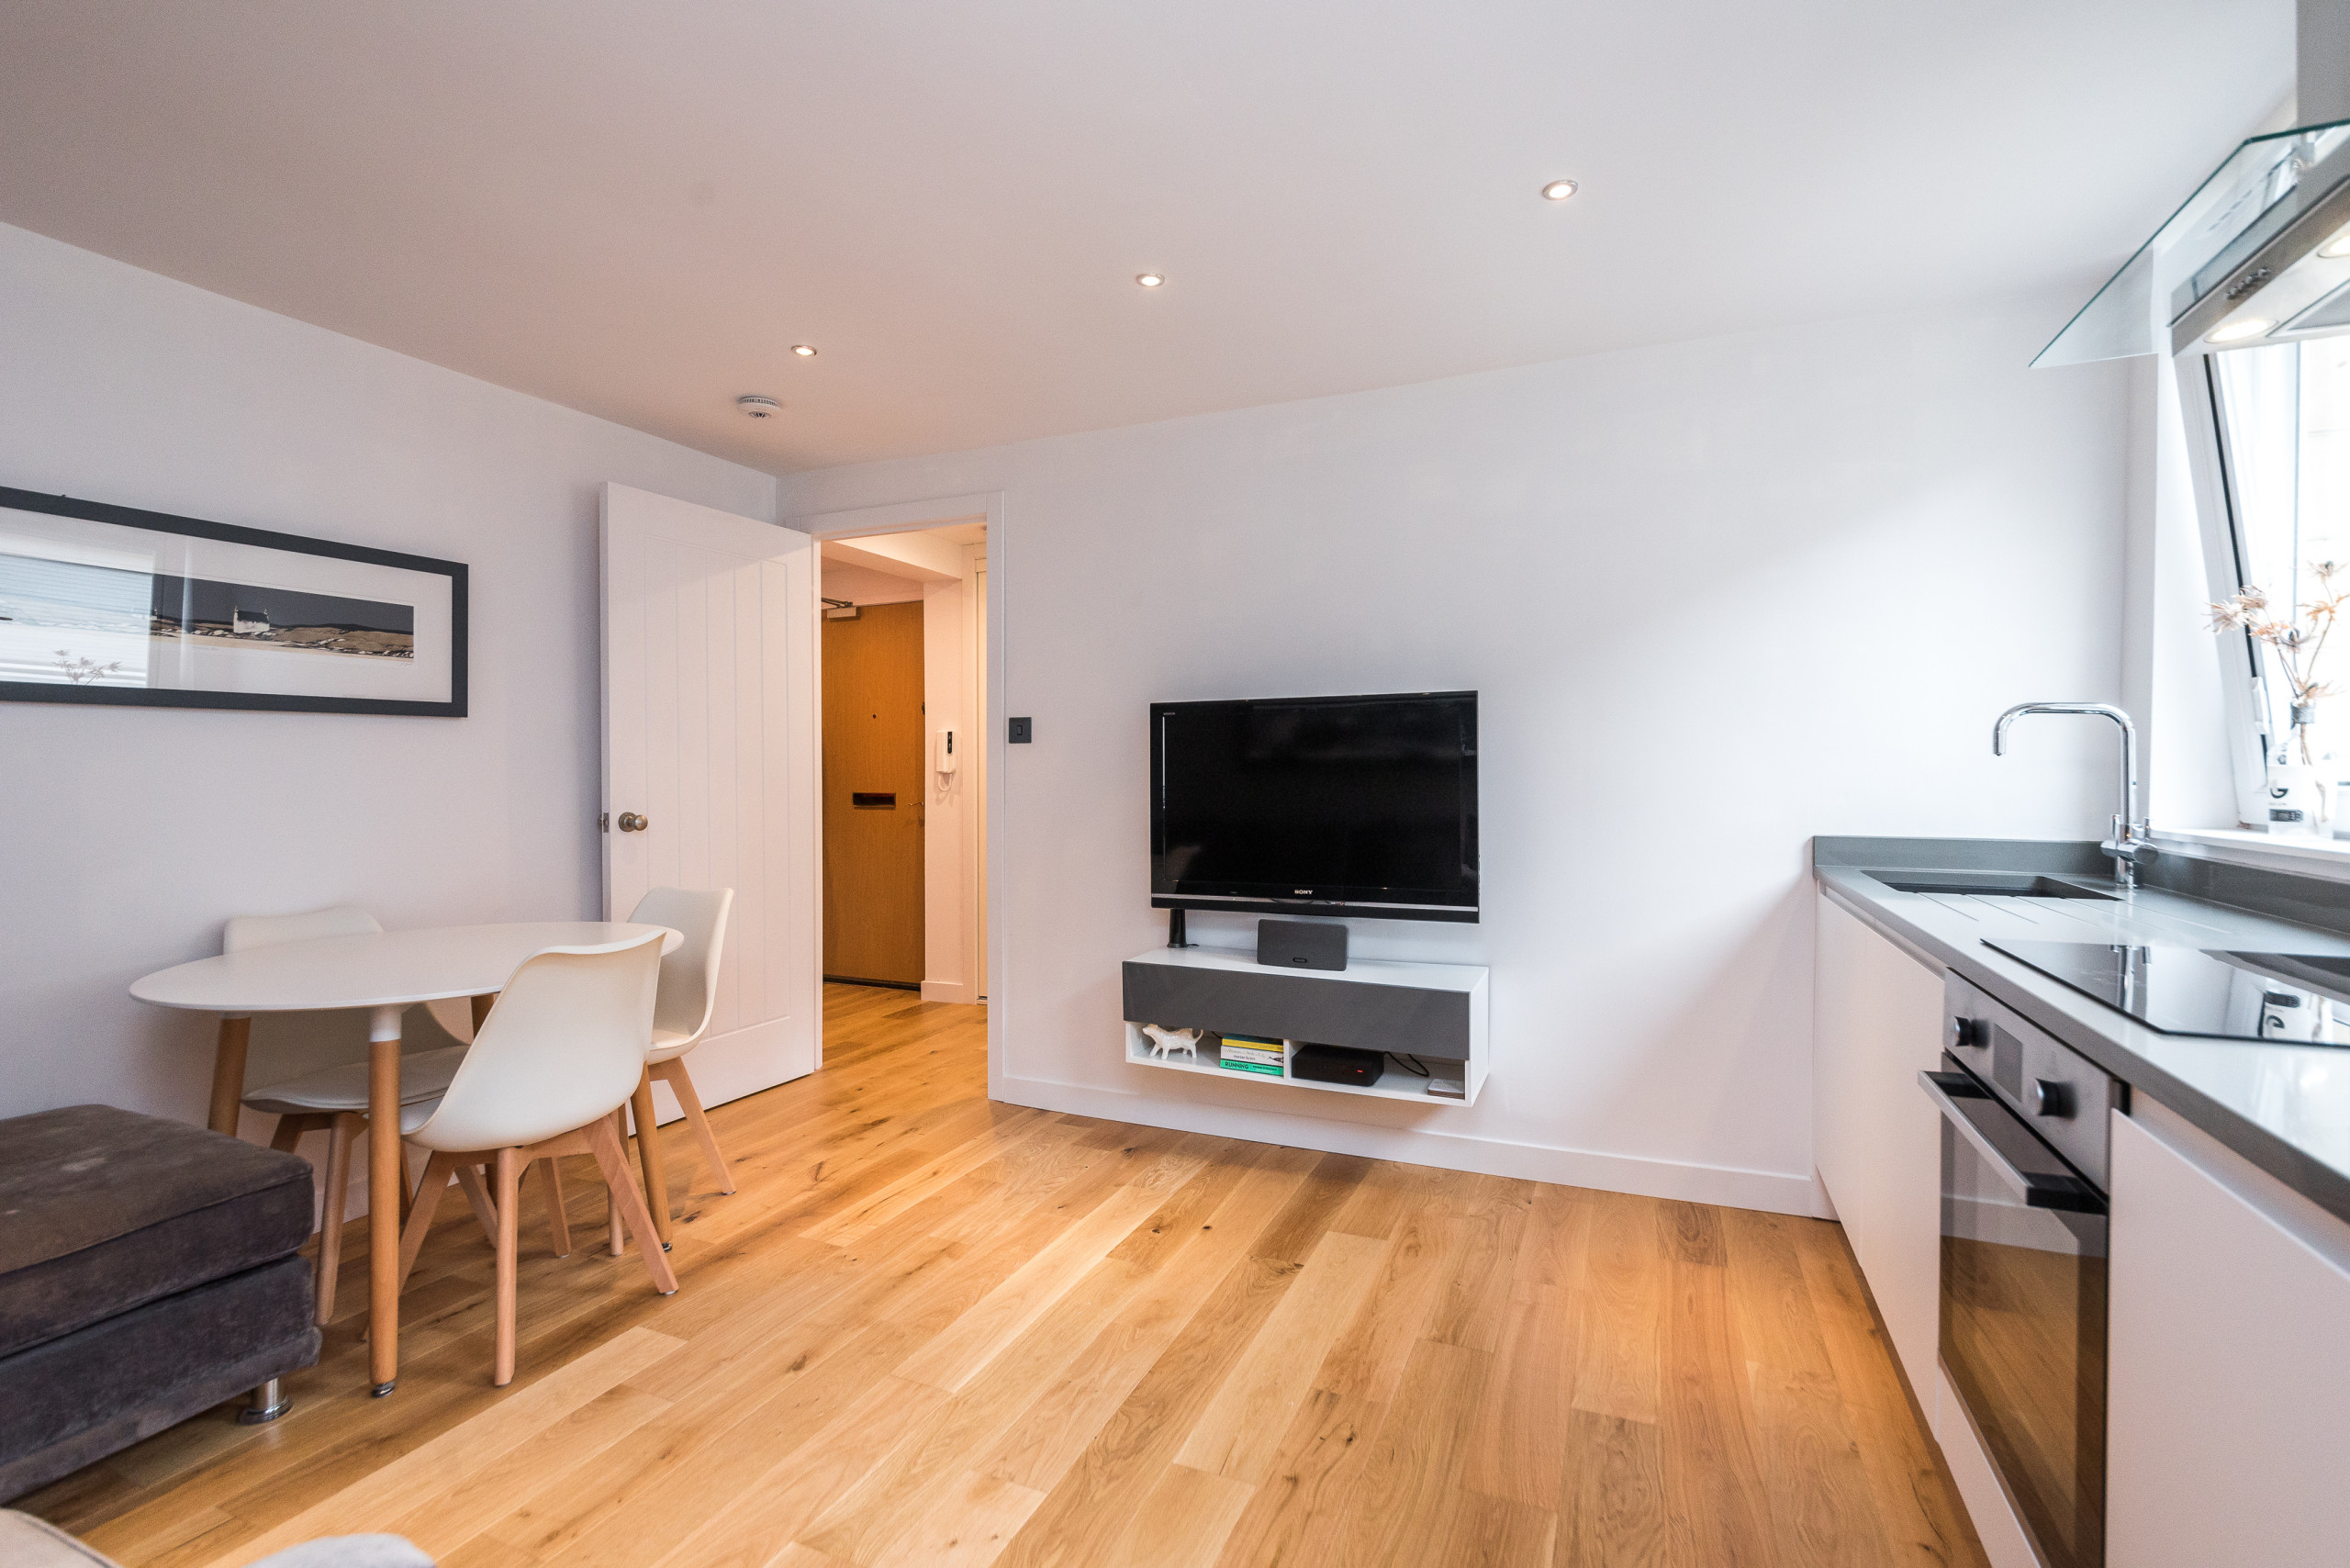 Alterations and Renovation of Mews Apartment, Edinburgh